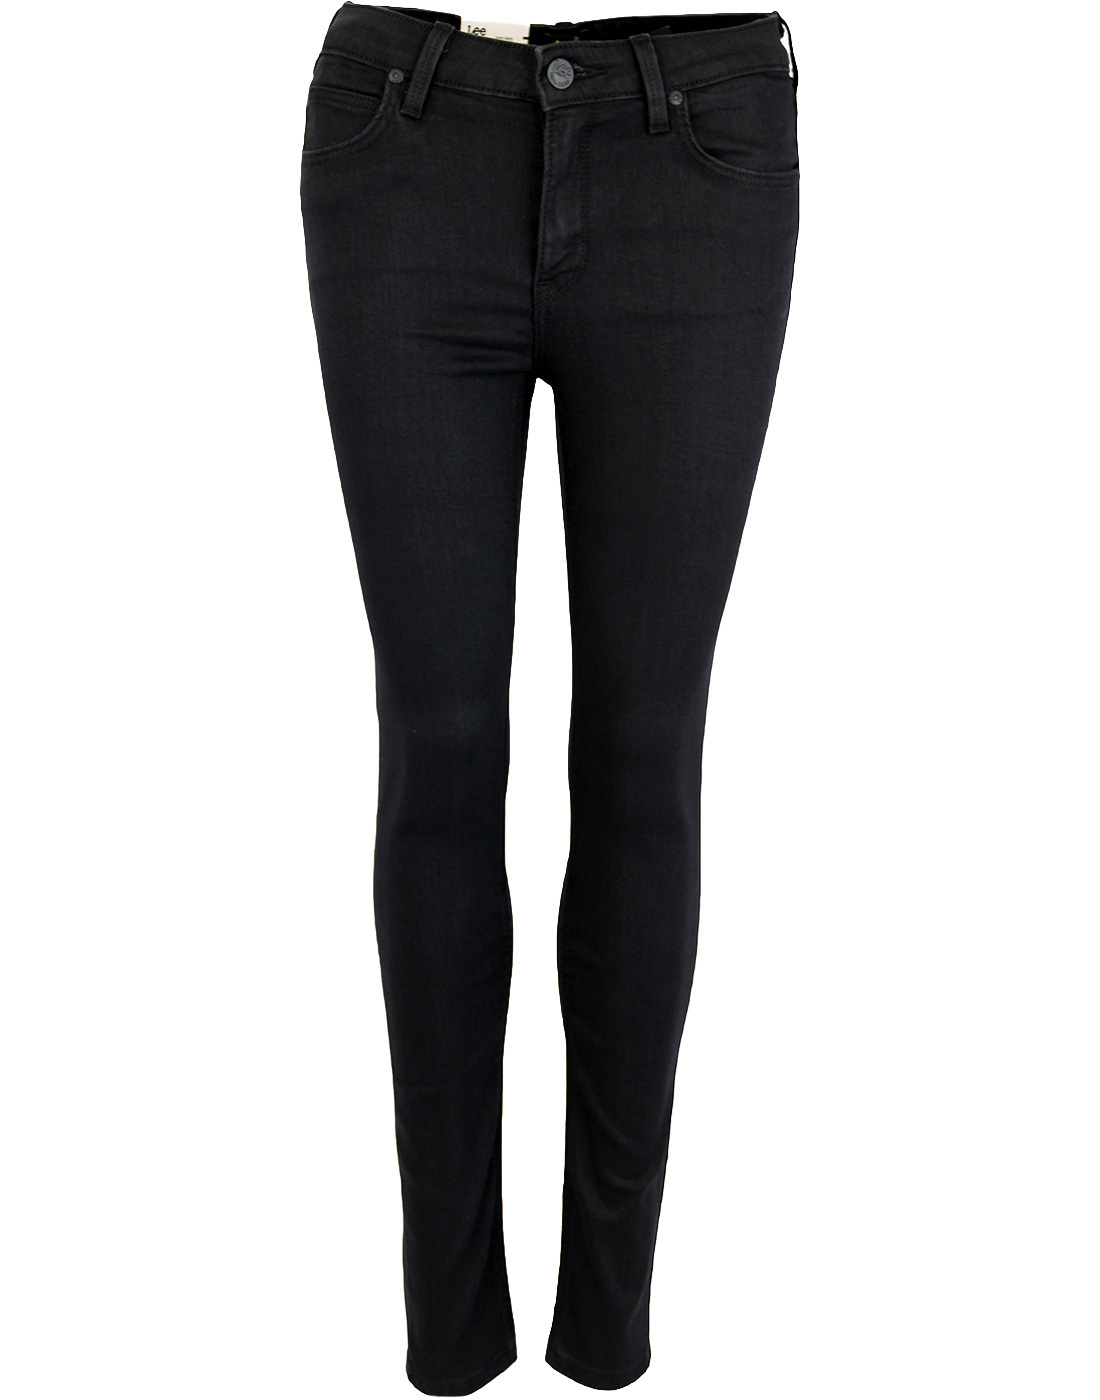 Jodee LEE Super Skinny Black Rinse Denim Jeans